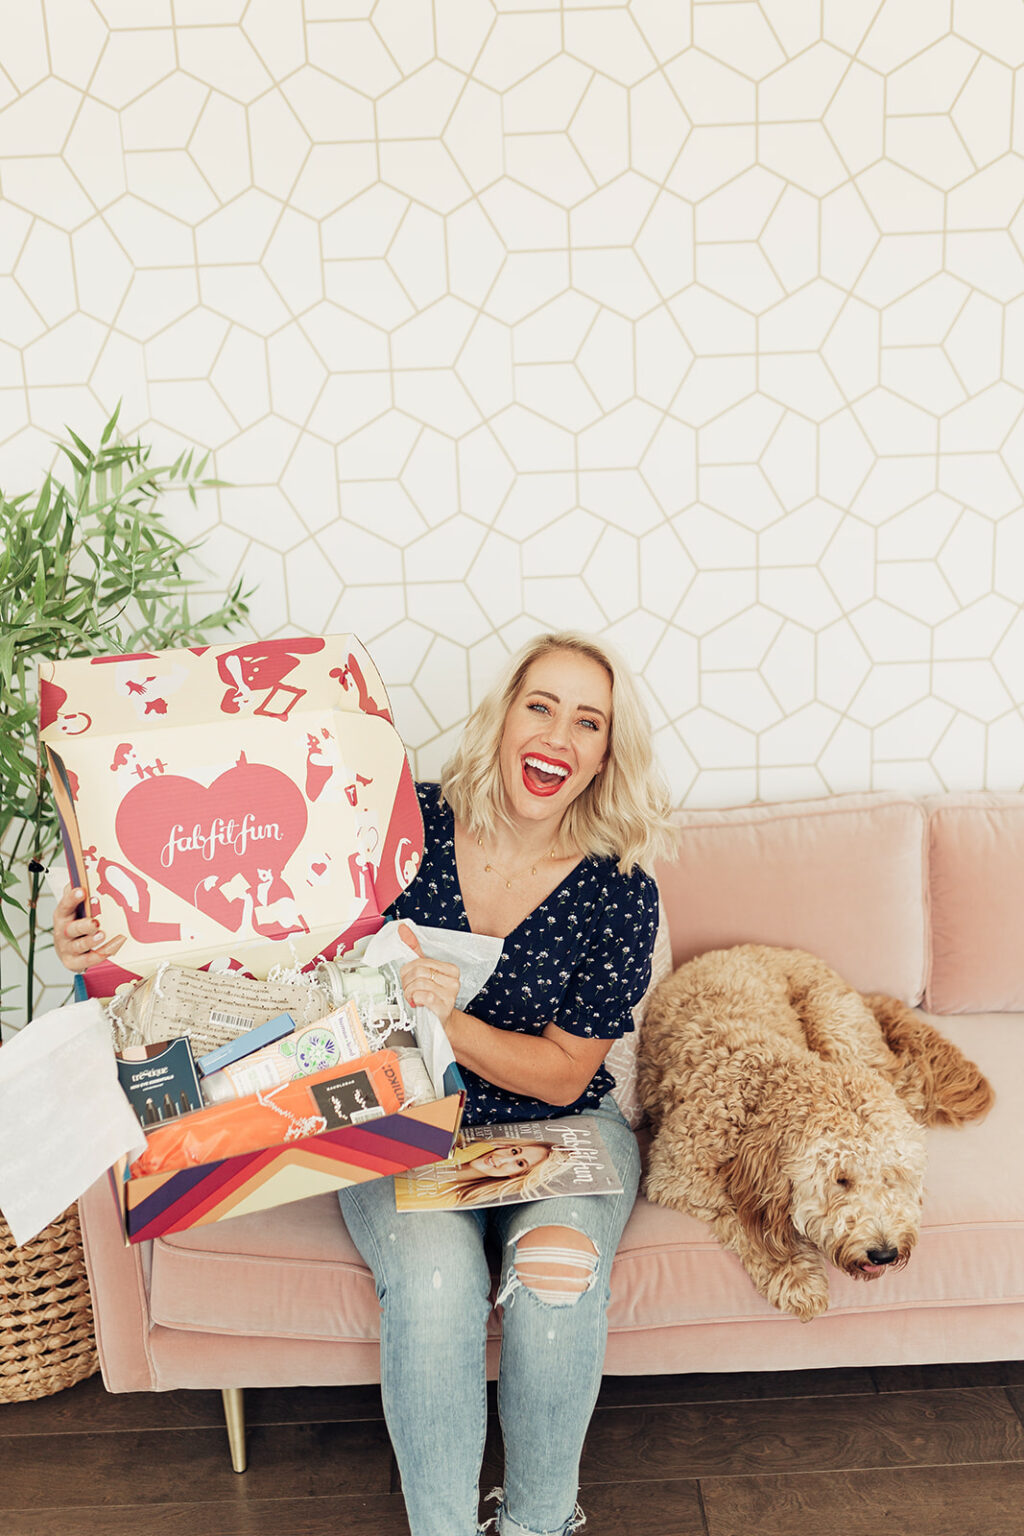 FabFitFun 2019 Box is here and here are the spoilers! Also, save 20% ($10) off your 1st box w/code: TWISTMEPRETTY. We will share the FULL LIST of FabFItFun Summer 2019 Box Spoilers, plus Add-Ons + Customization spoilers, when available!